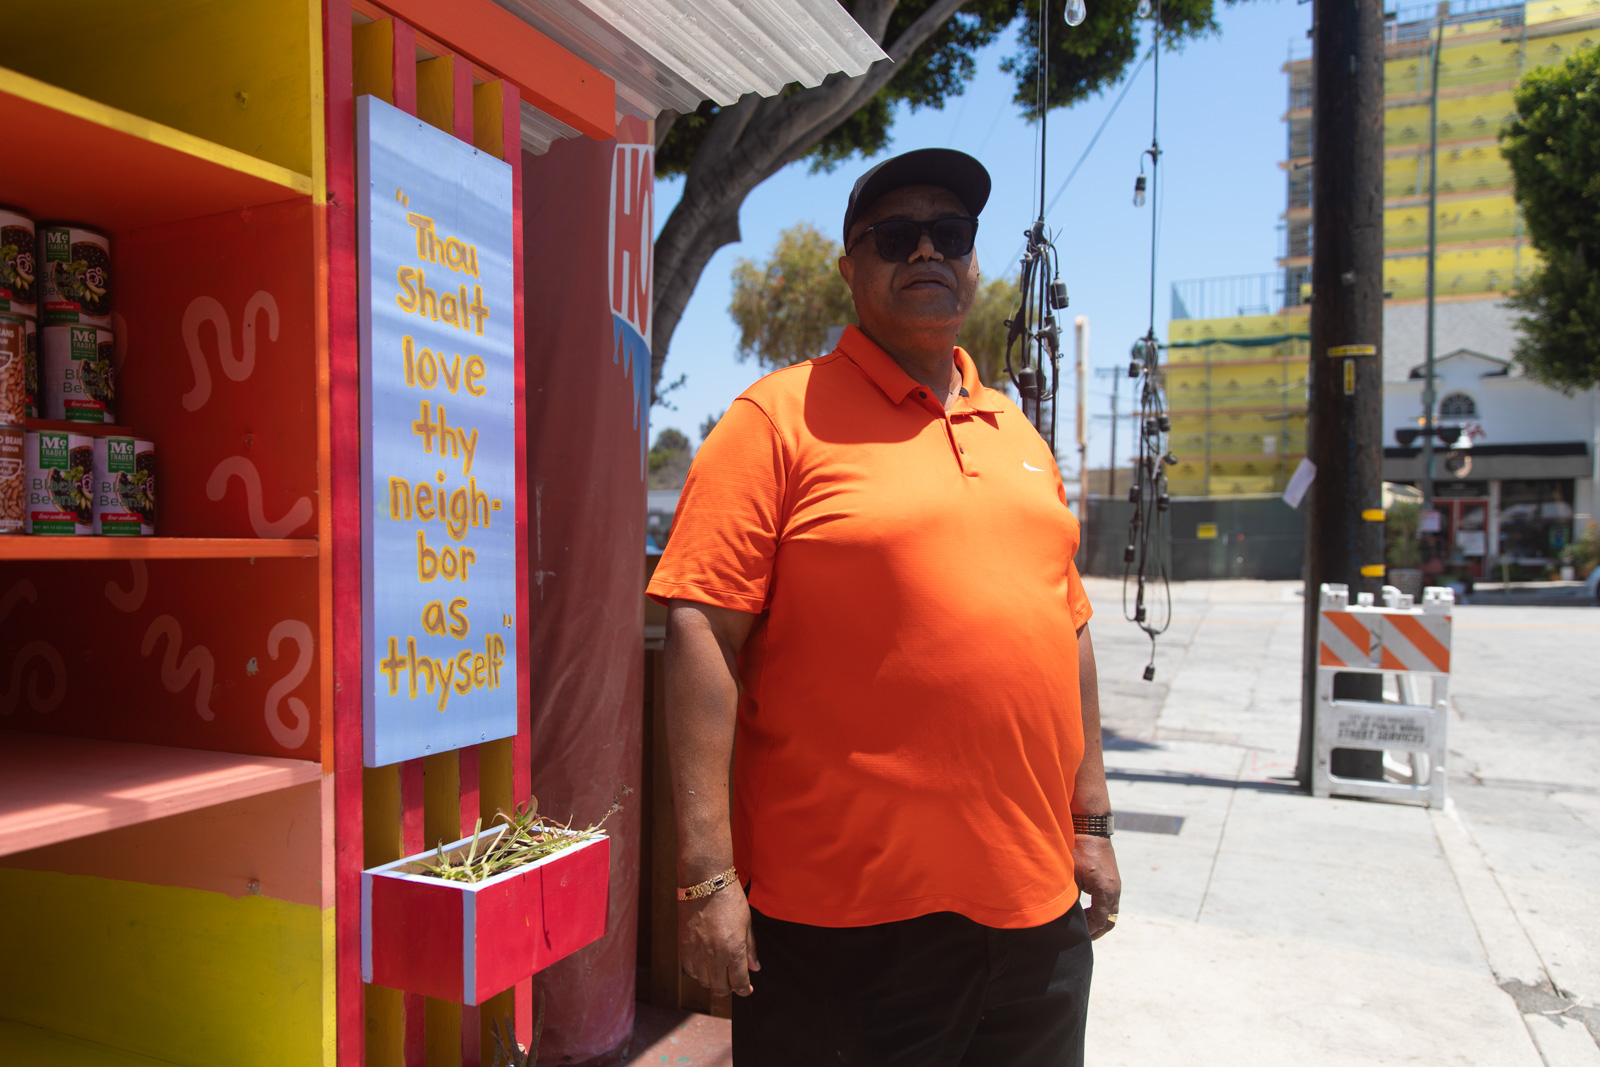 """A man in an orange shirt and black sunglasses stands outside next to a sign that reads """"Thou shalt live they neighbor as theyself."""""""